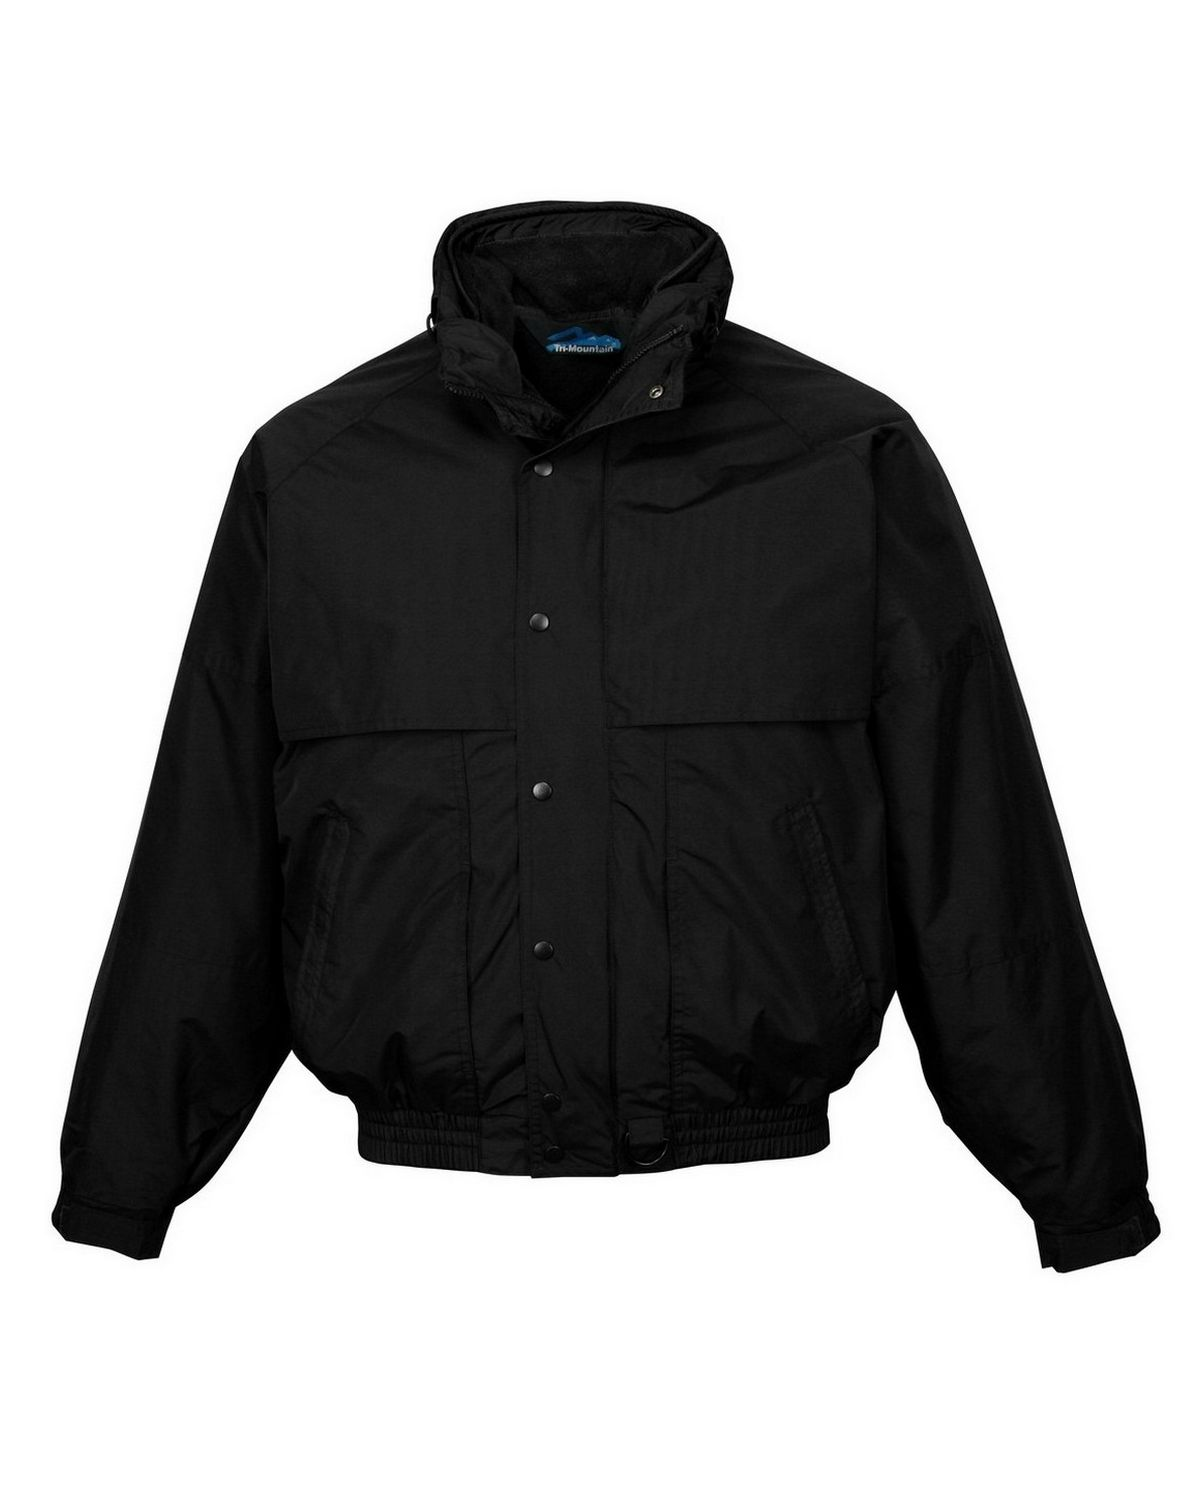 Tri-Mountain 7800 Dakota - Black / Black - XL 7800